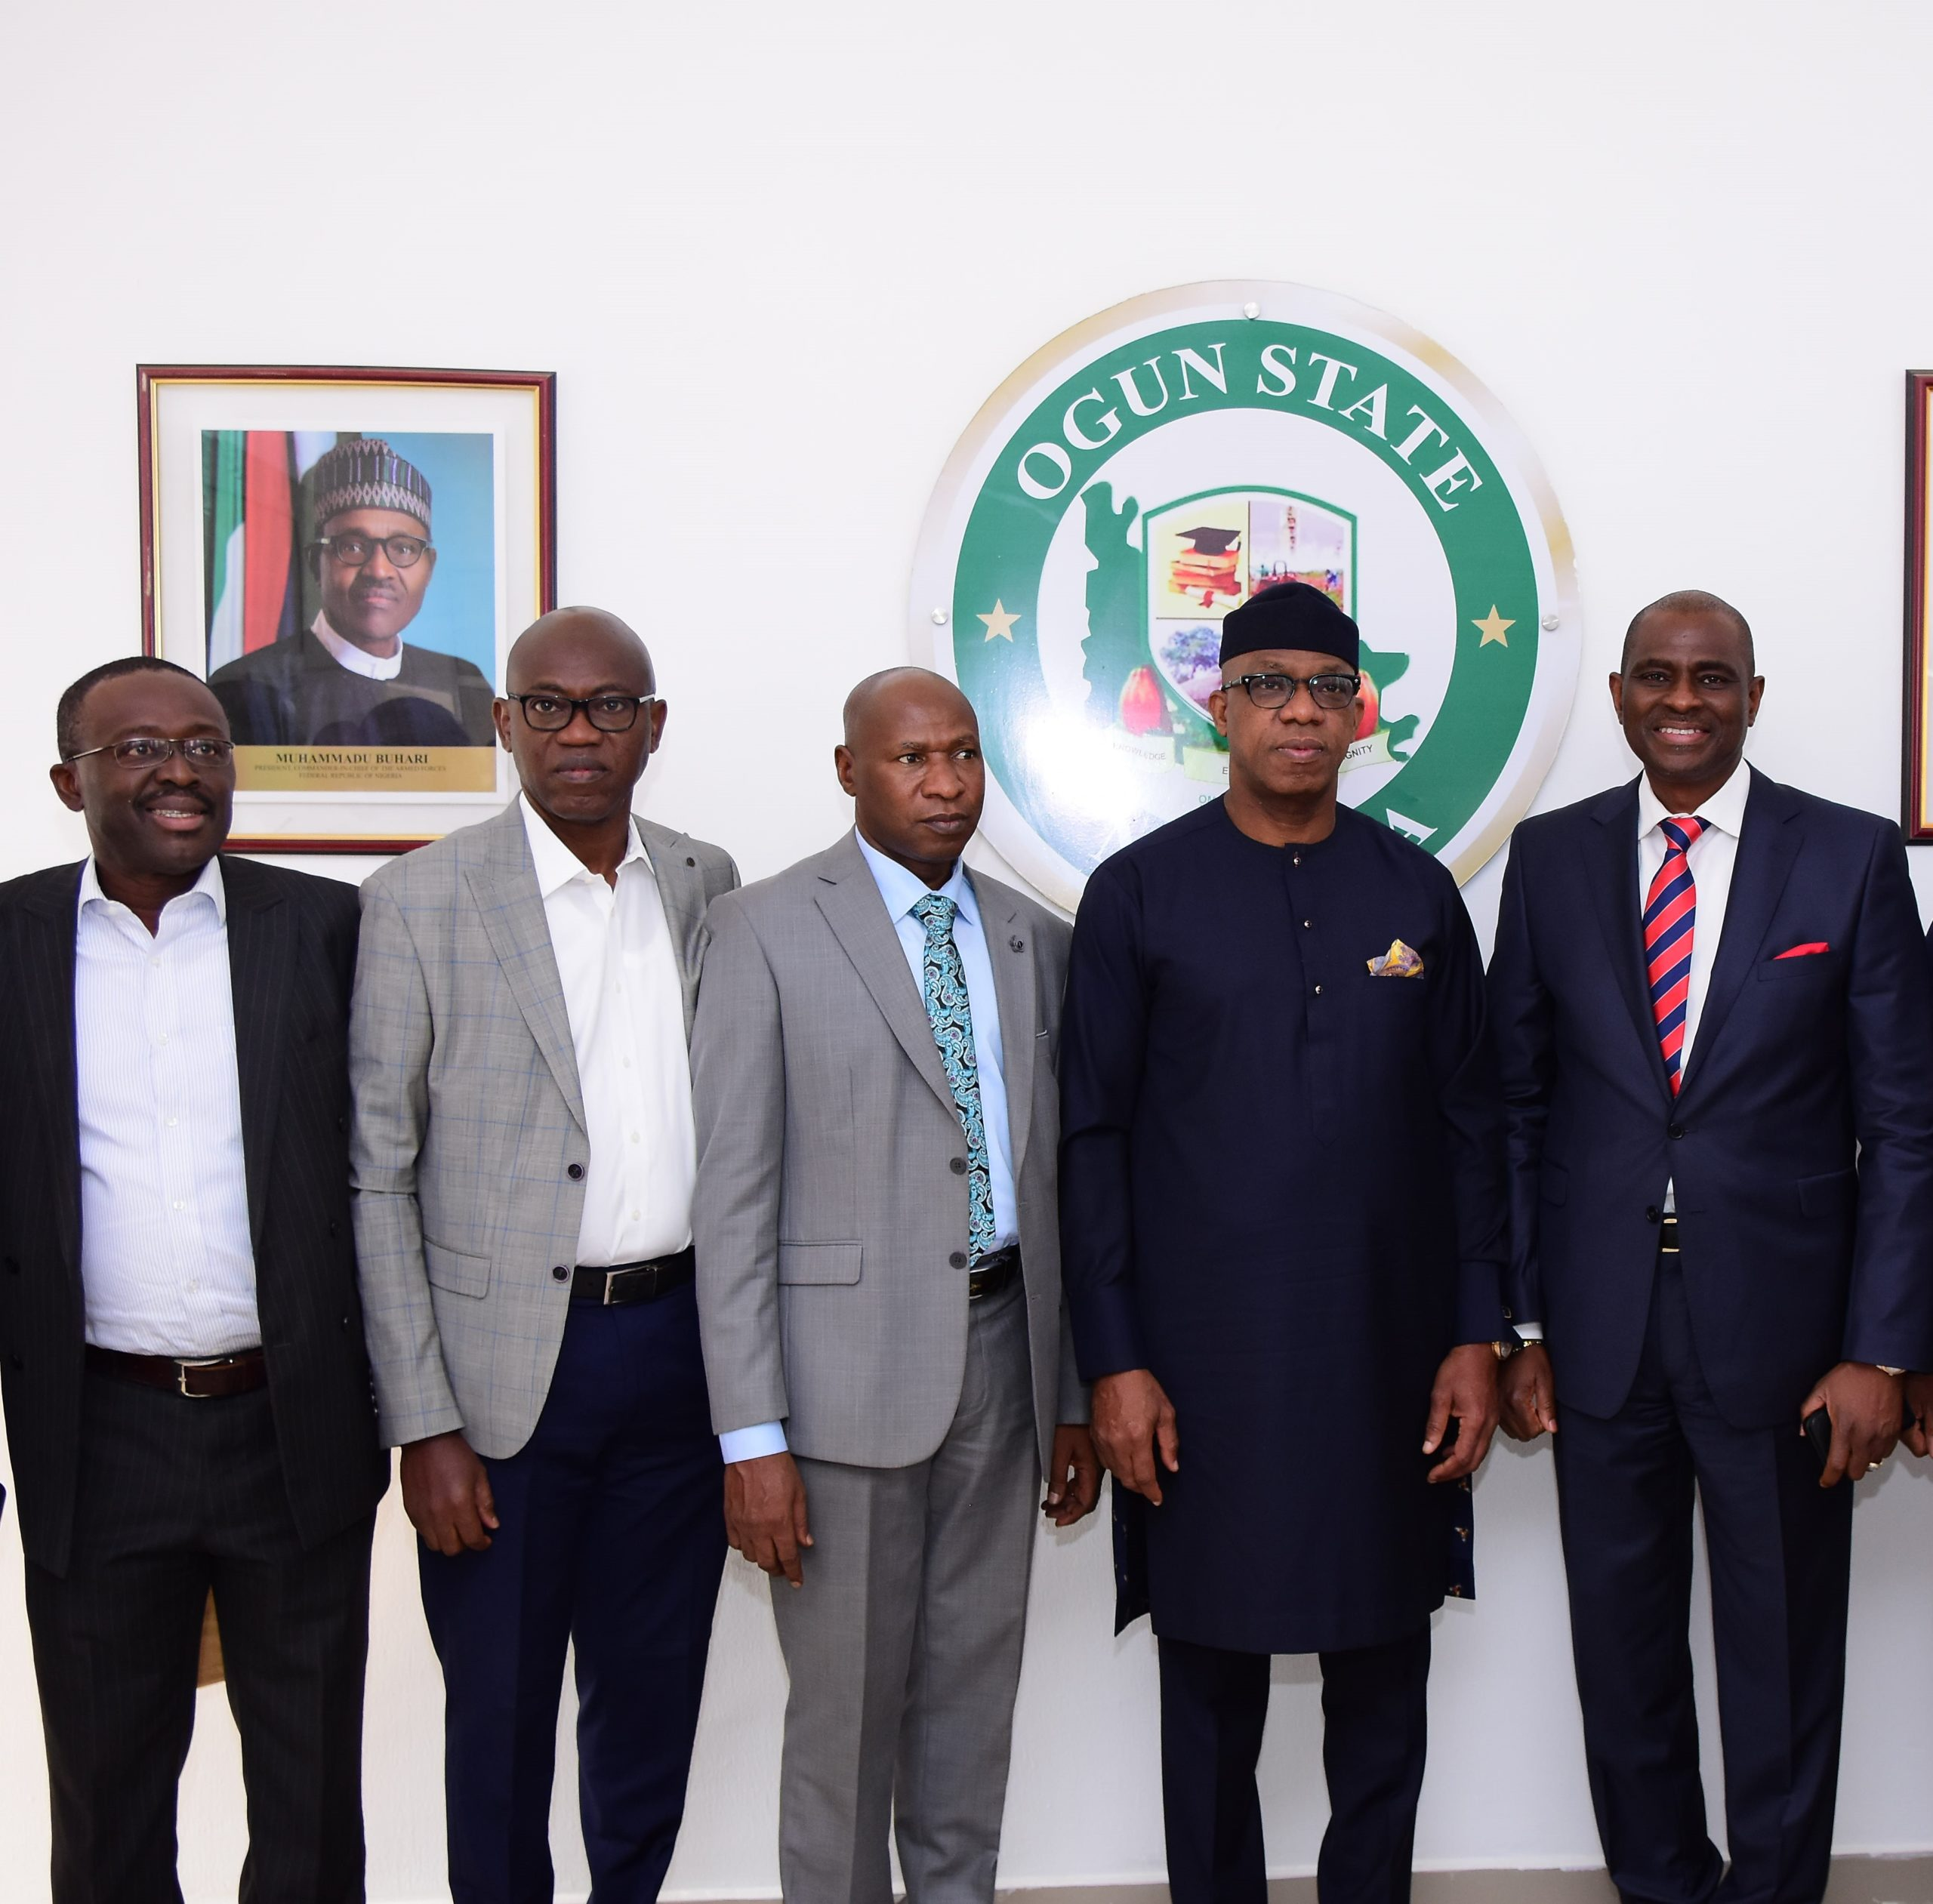 Ogun State Governor, Abiodun, Hails Airtel for Support to Security - Brand Spur